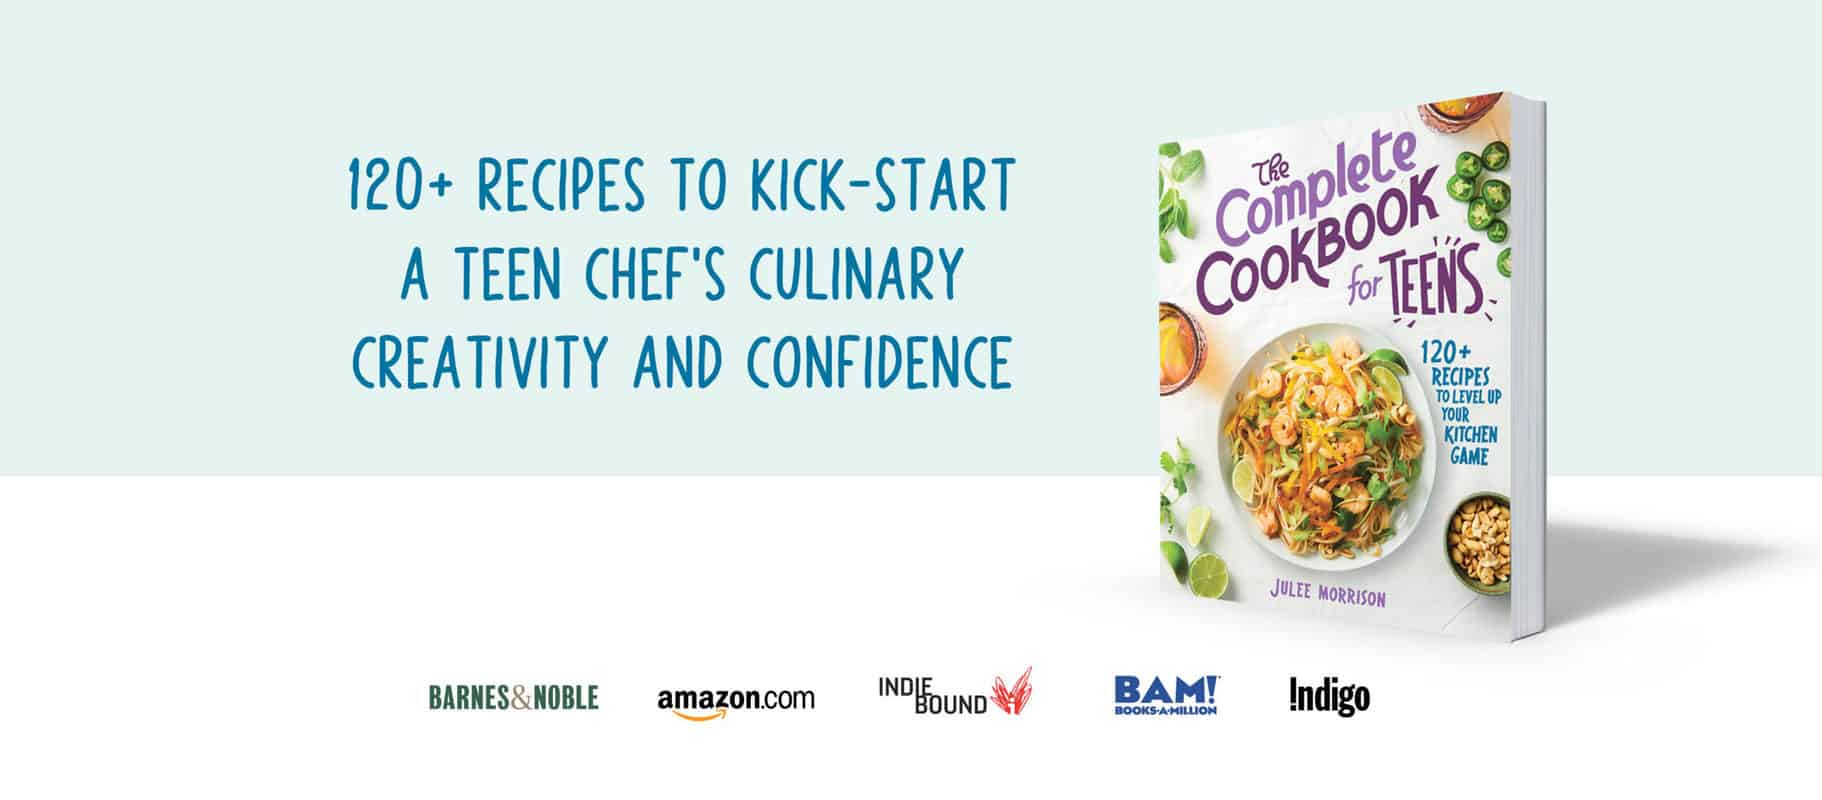 the complete cookbook for teens banner